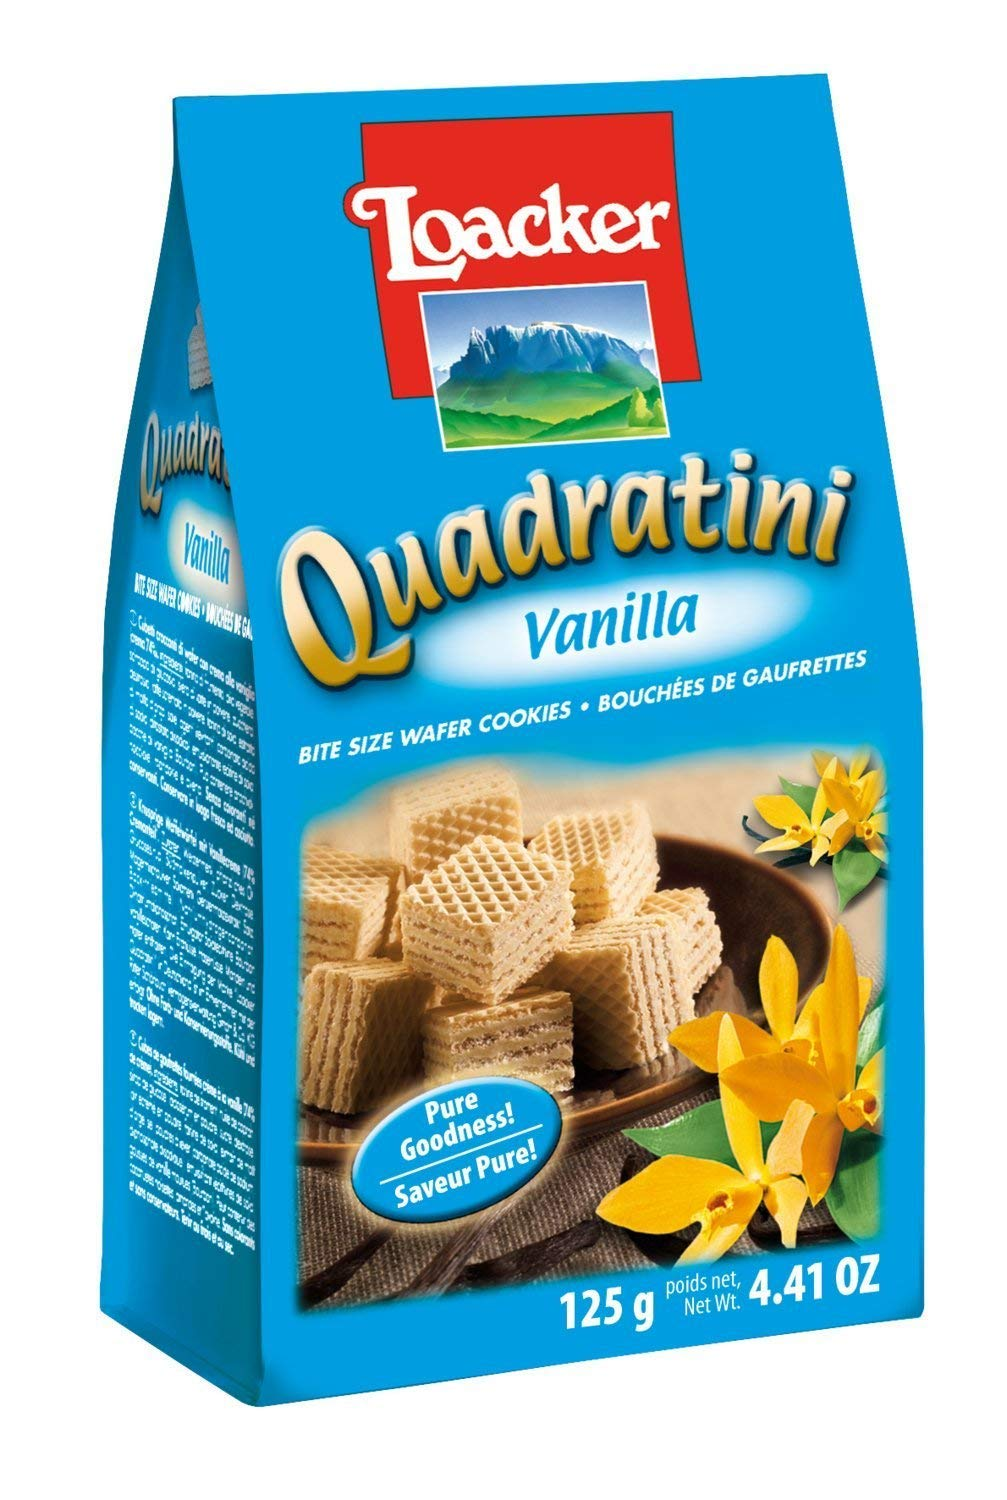 Amazon.com : Loacker Vanilla Quadratini 125 g (Pack of 6) : Grocery & Gourmet Food